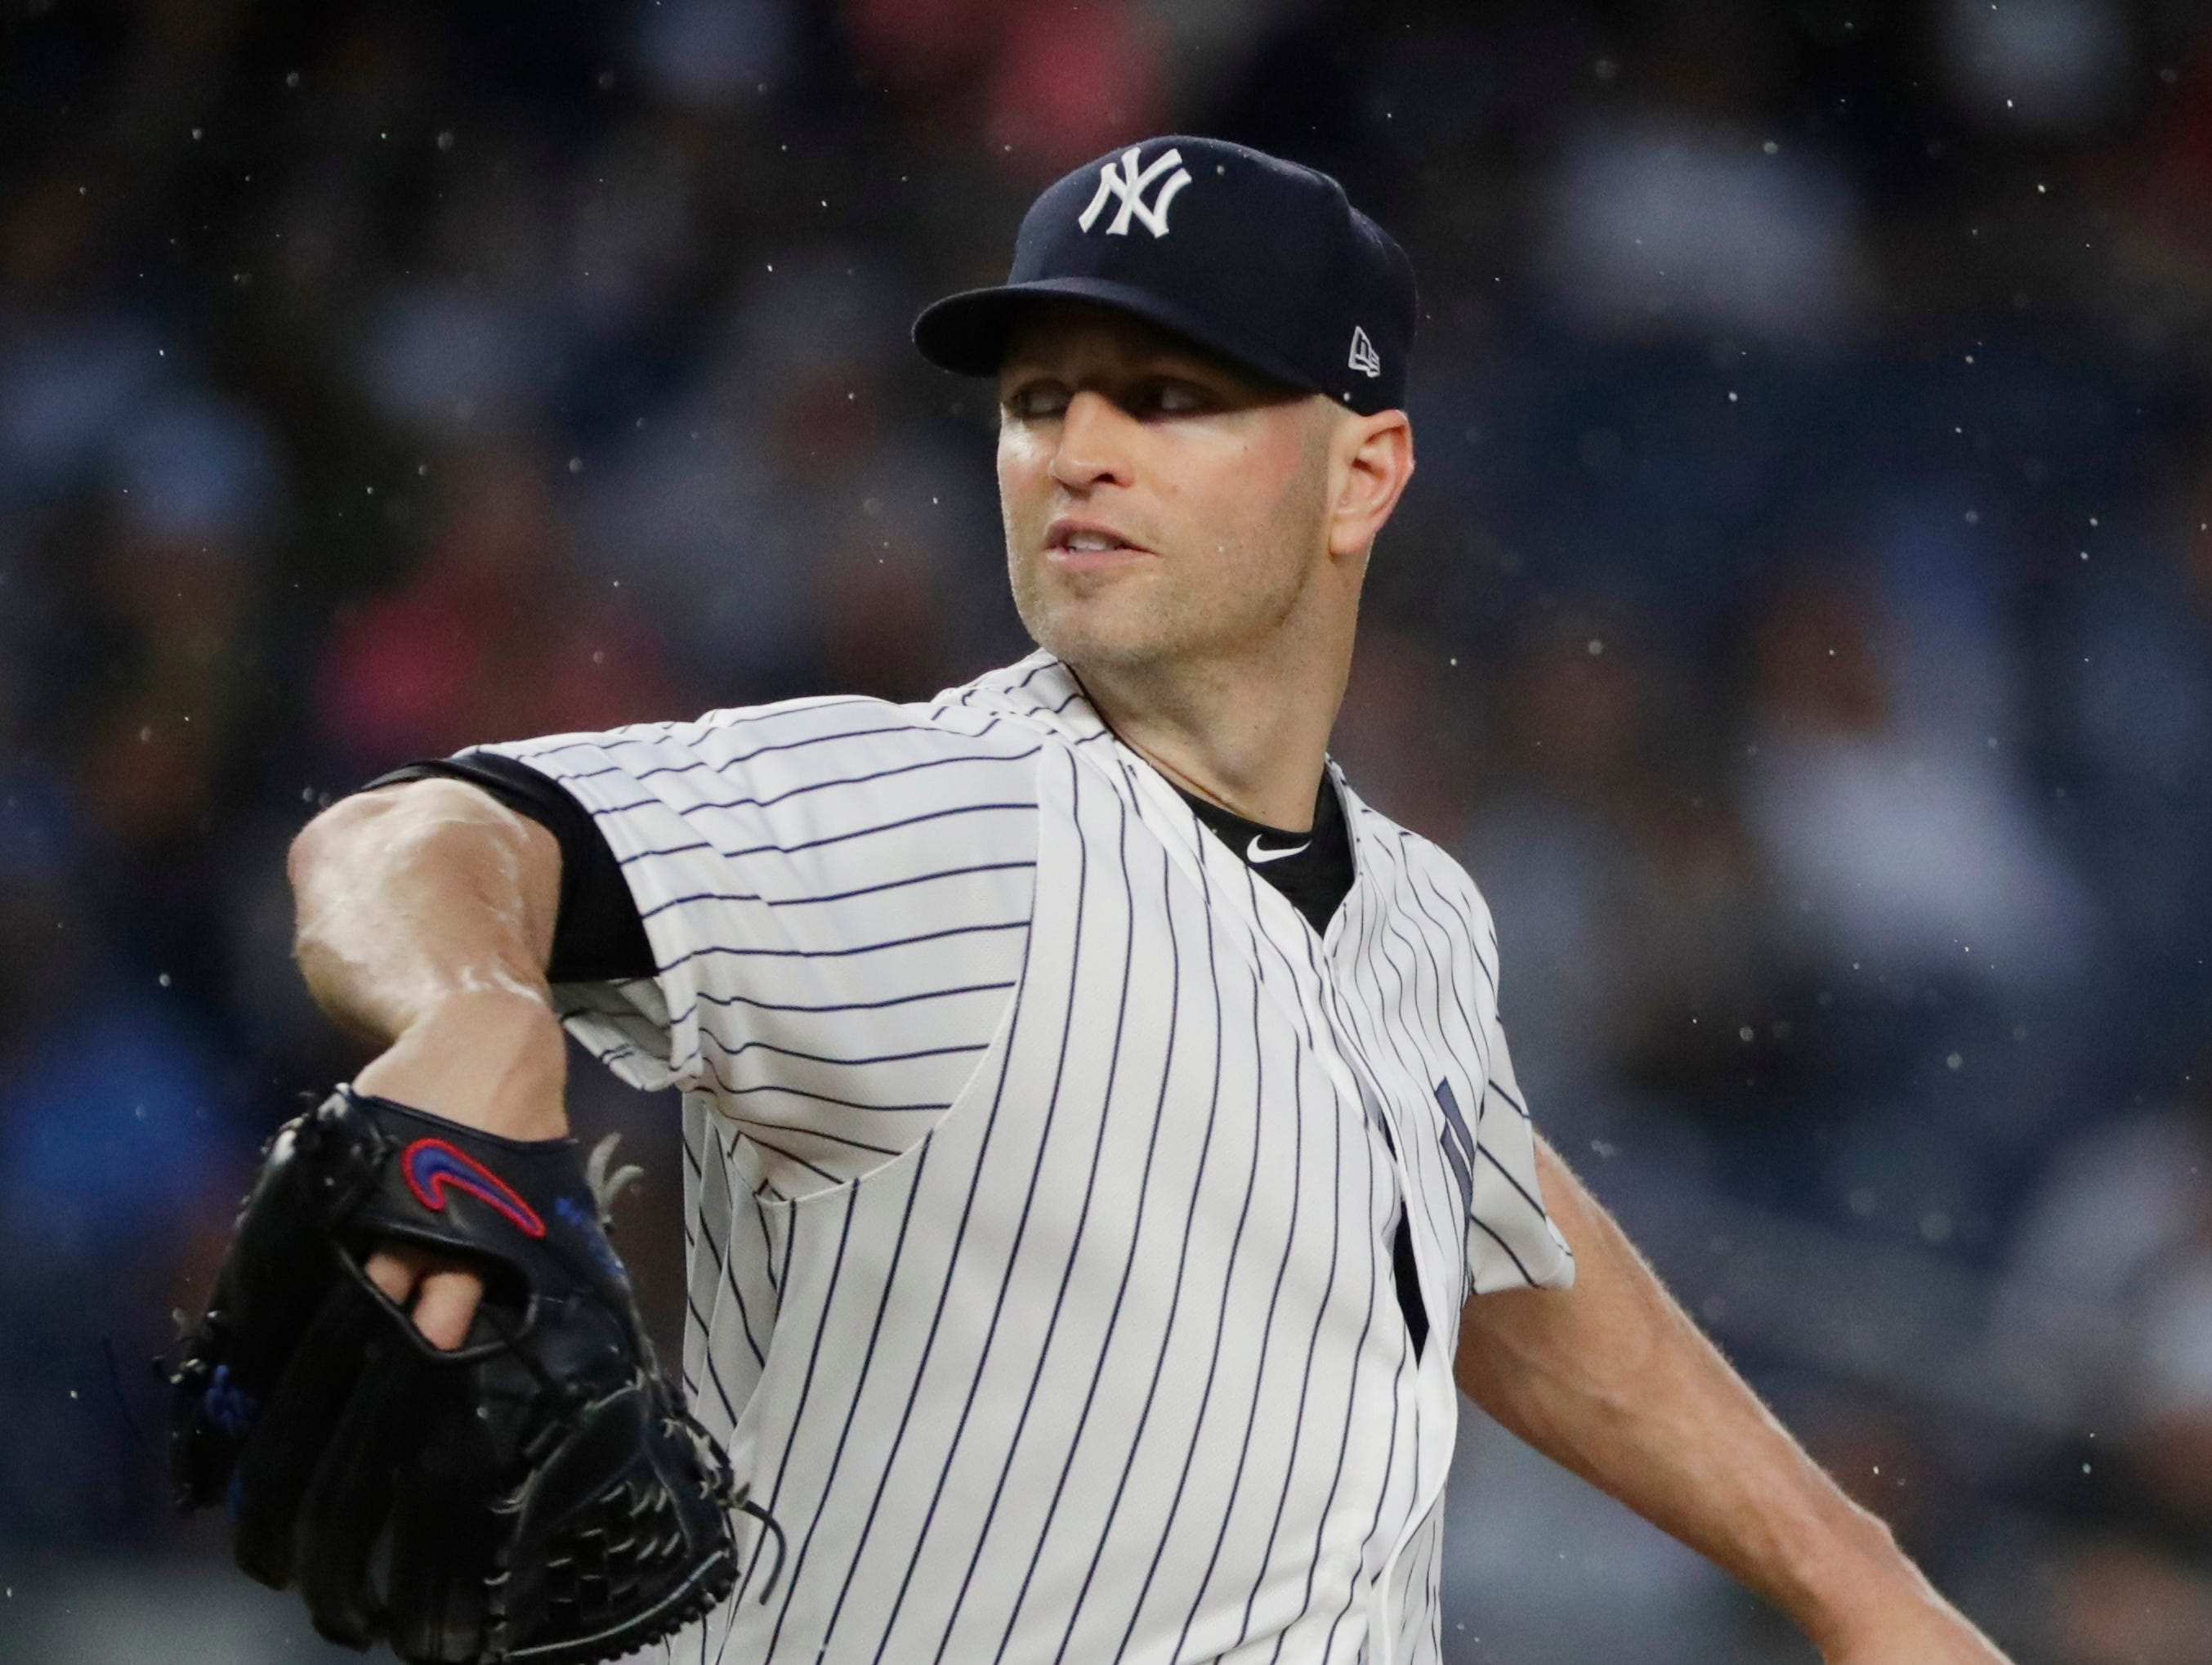 New York Yankees' J.A. Happ delivers a pitch during the first inning of a baseball game against the Tampa Bay Rays Tuesday, Aug. 14, 2018, in New York.